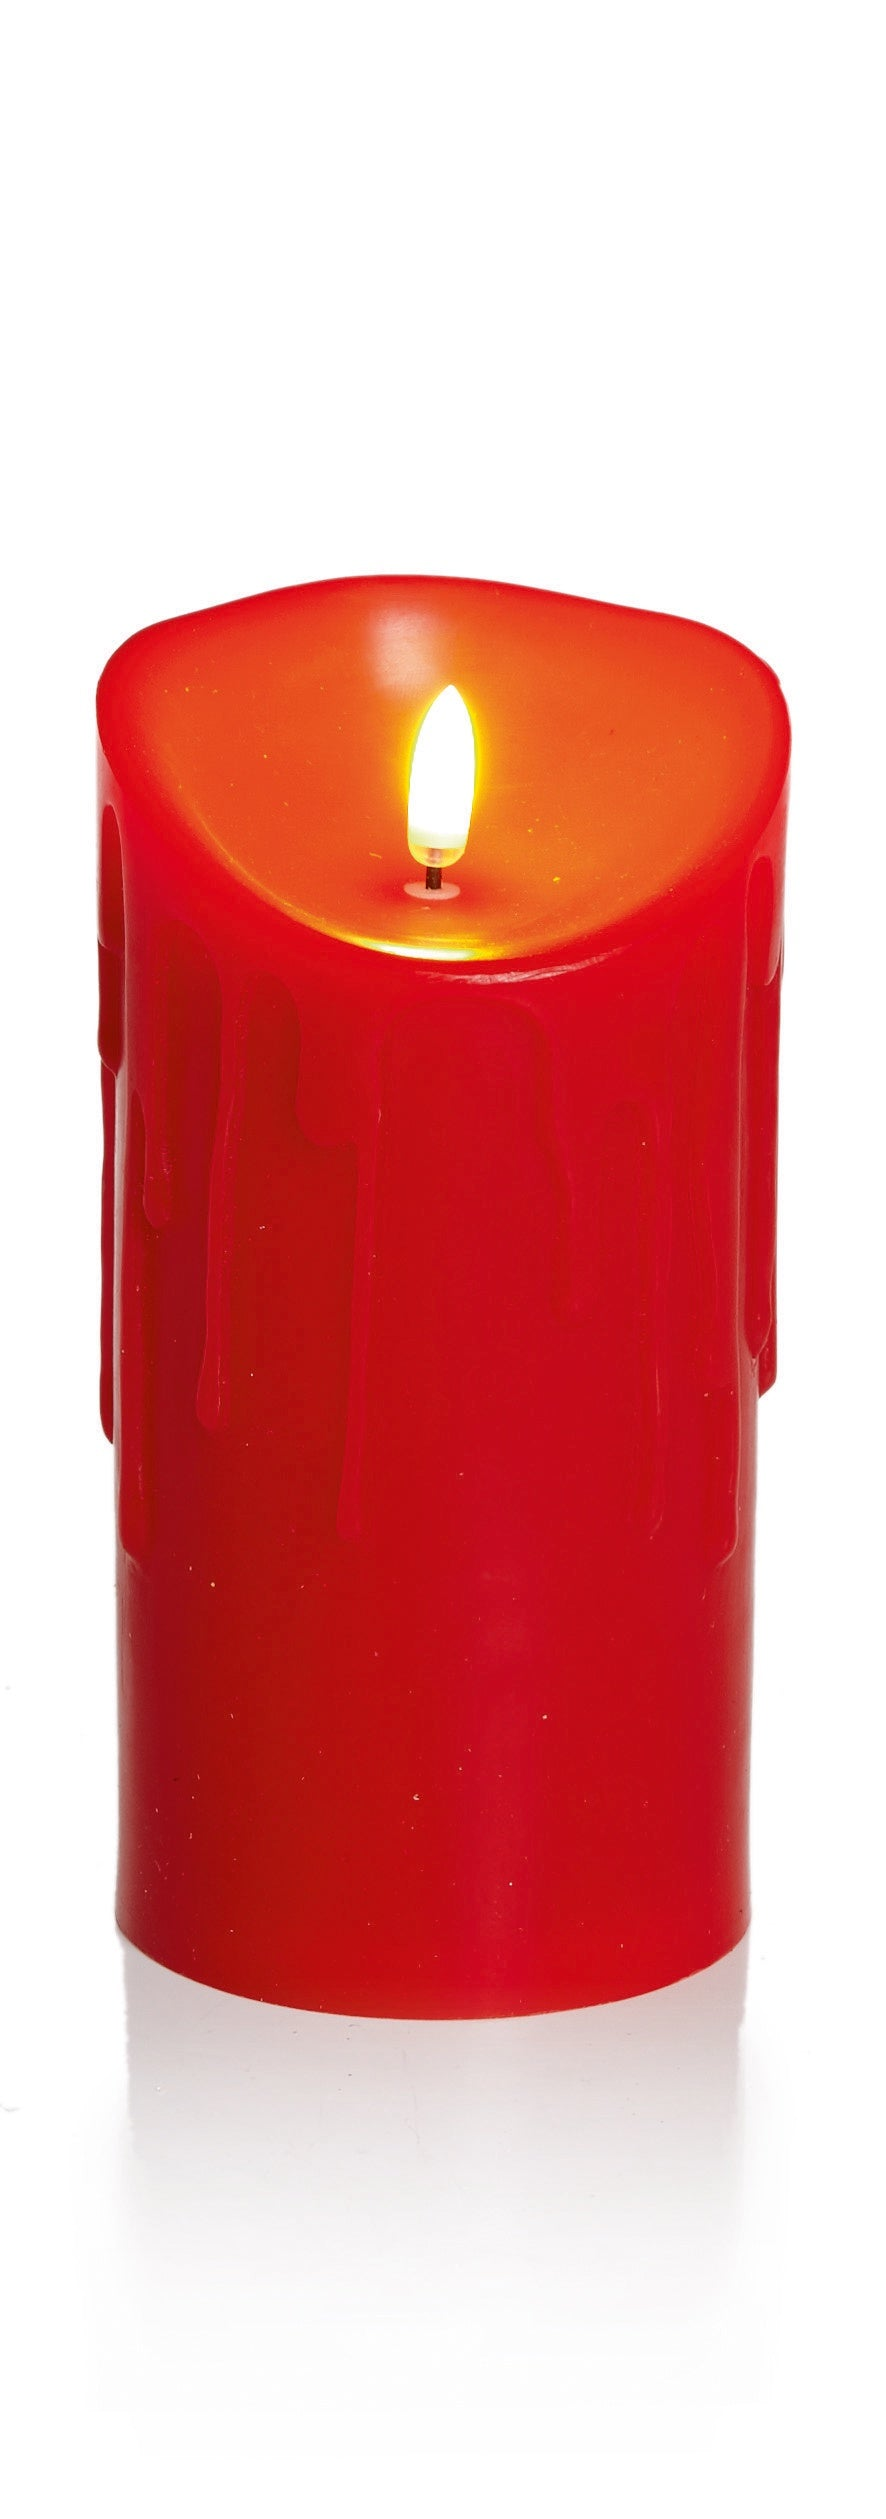 18x9cm Red Melted Edge Flickabright Candle w/Timer